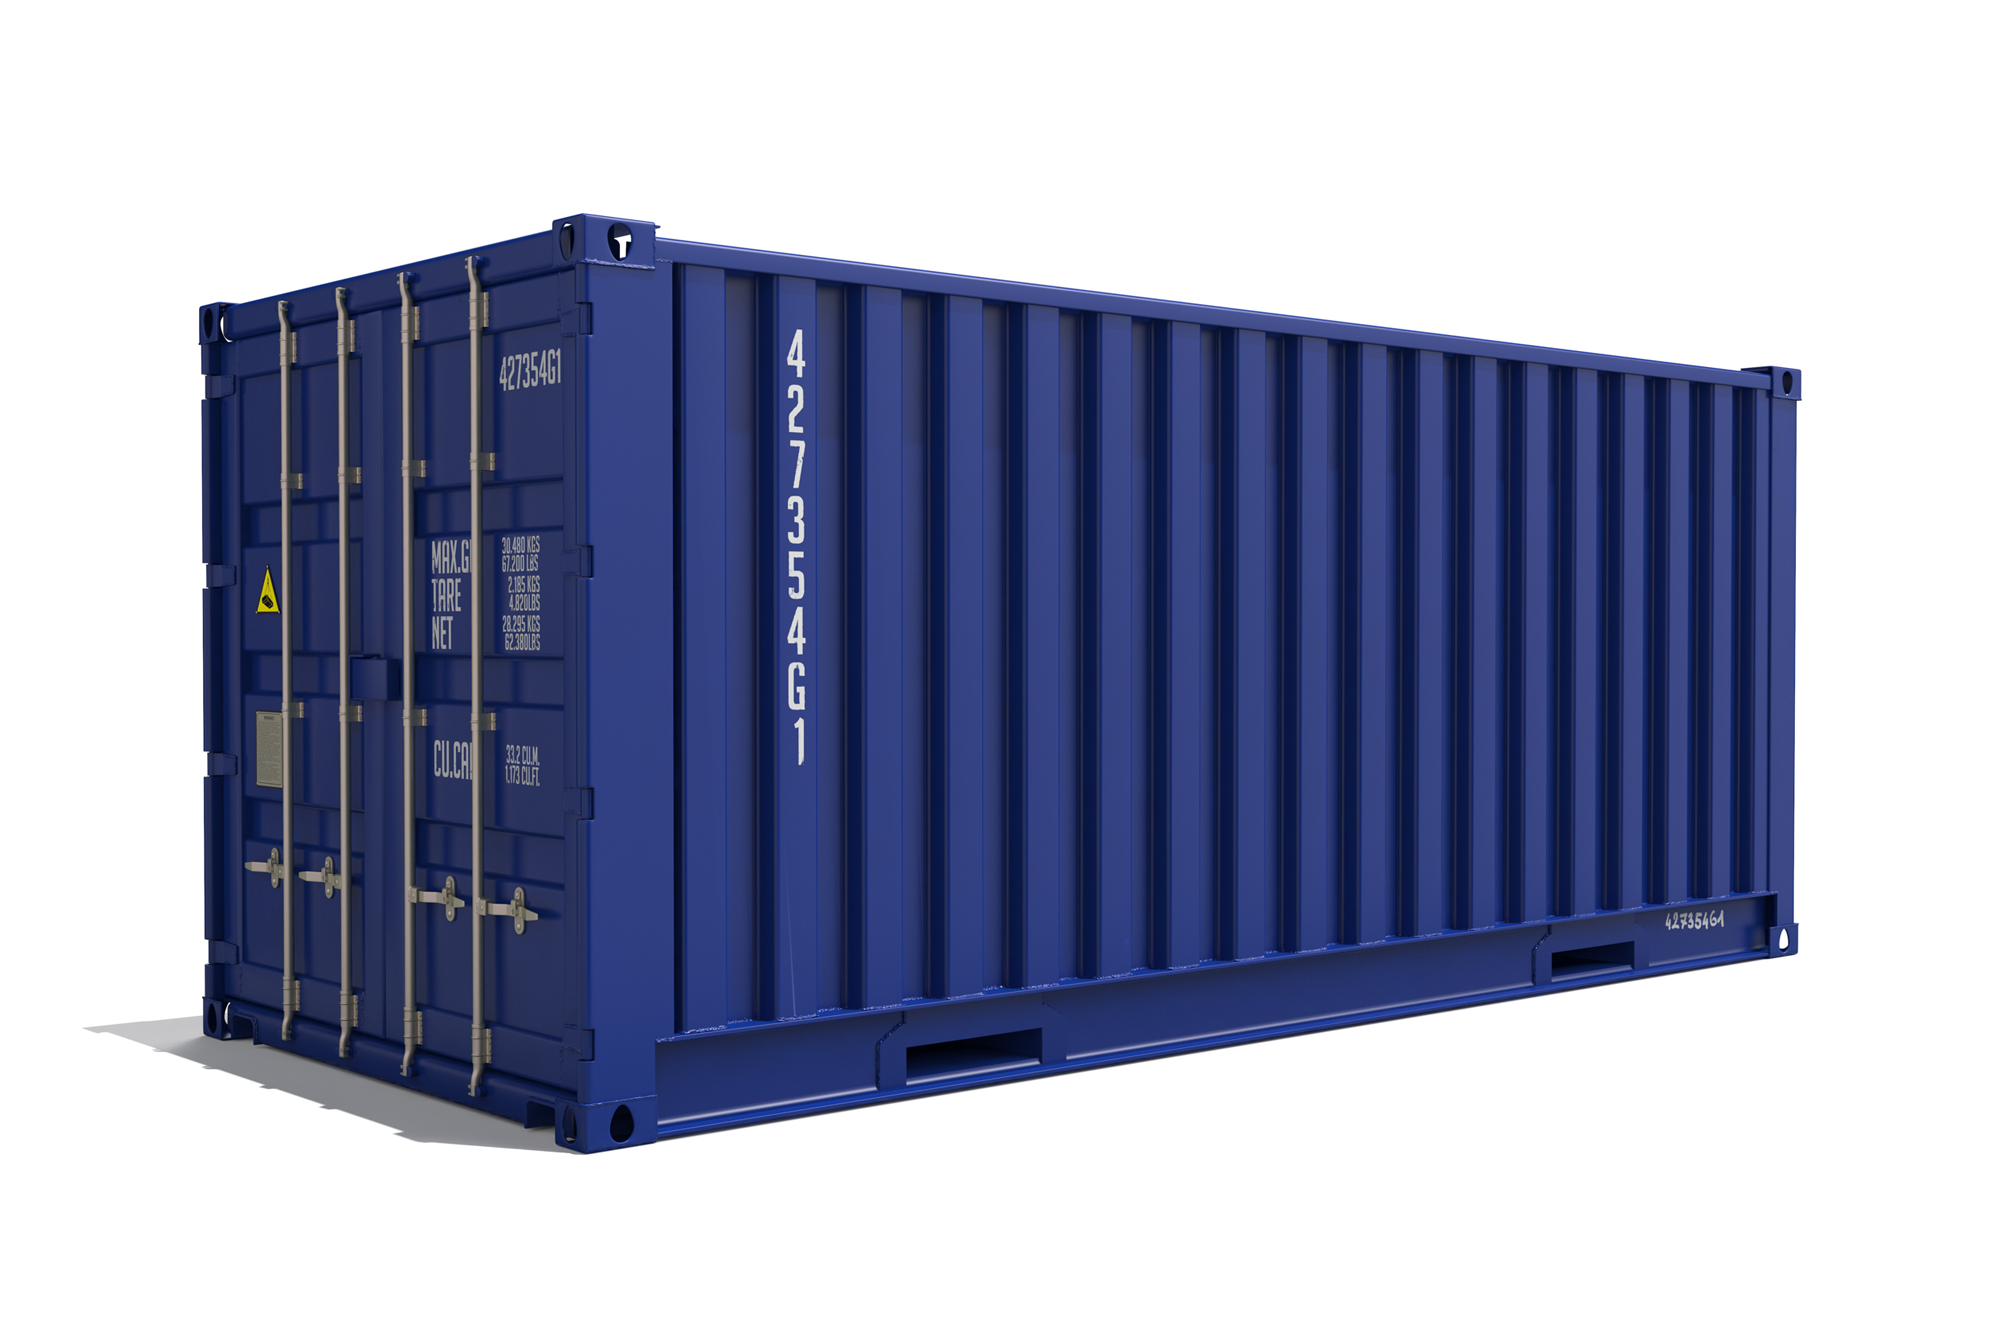 Shipping container PNG Images.